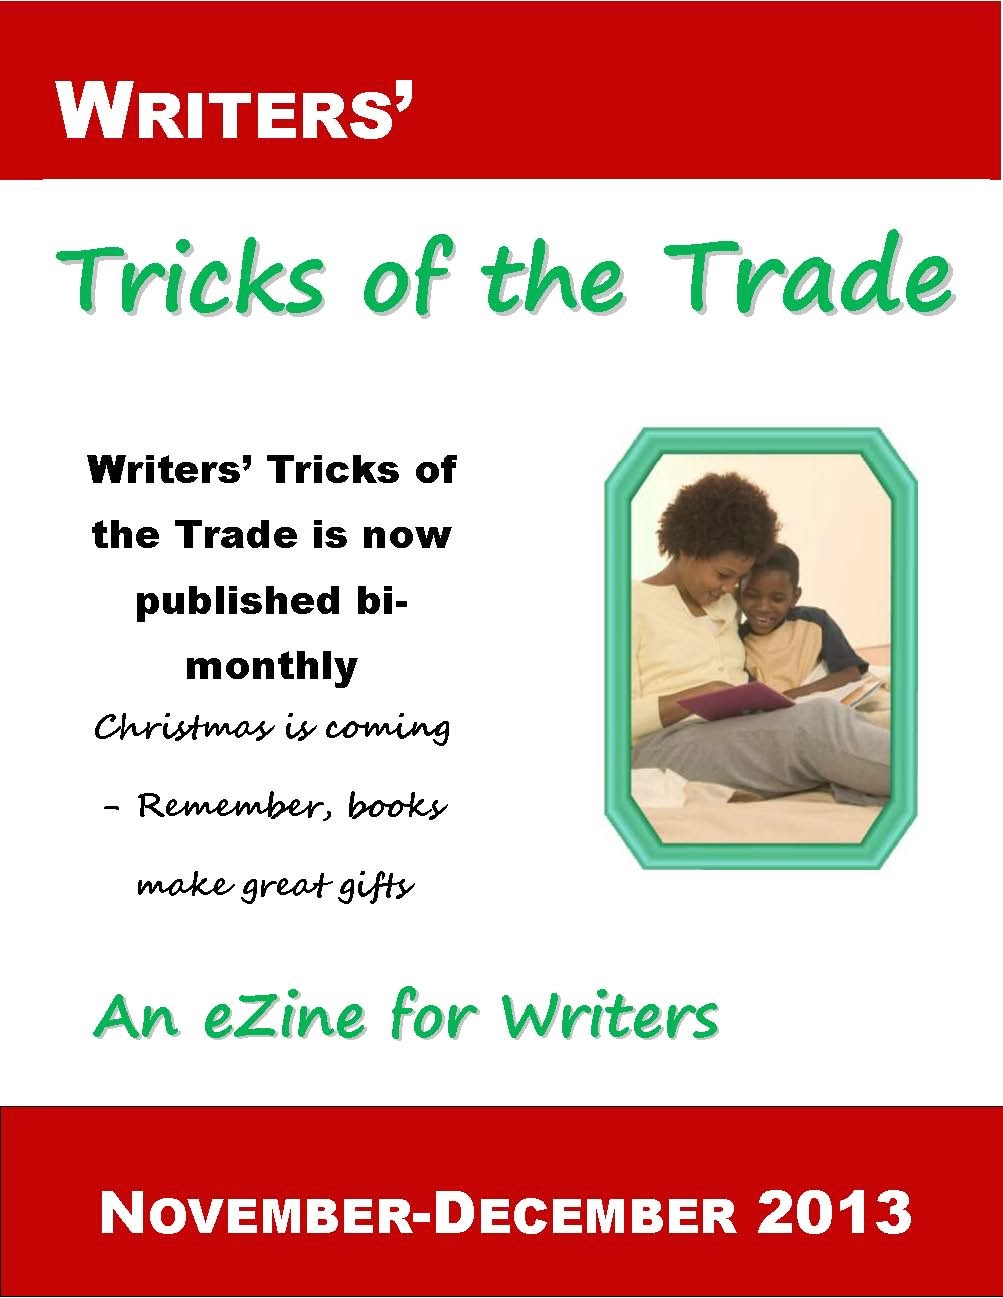 NOV-DEC 2013 Writers Tricks of the Trade